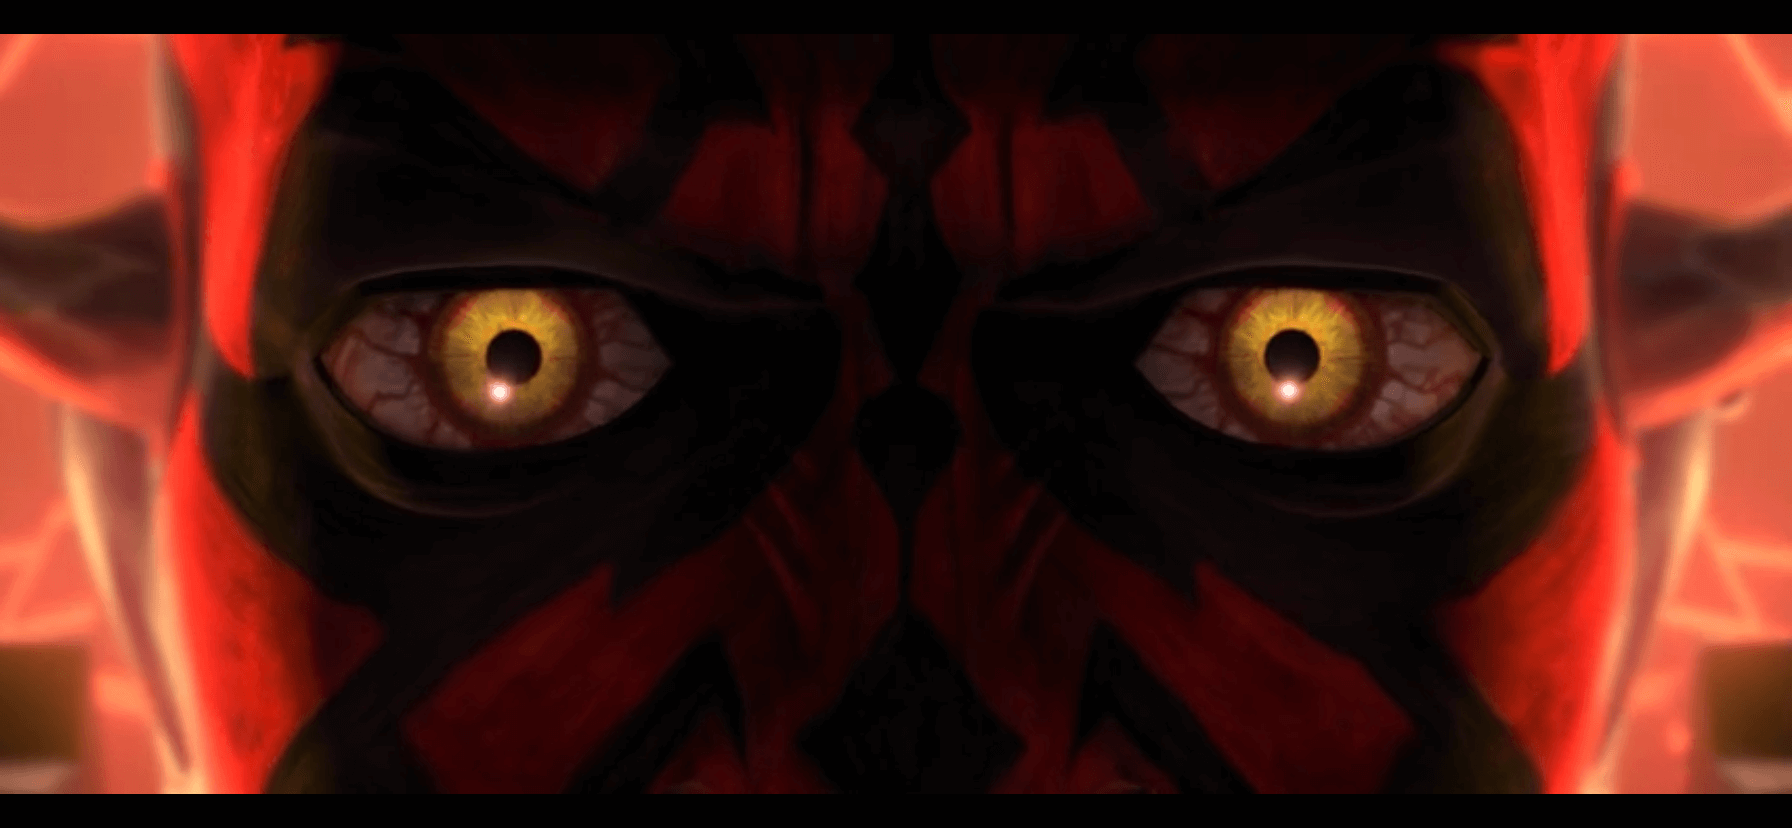 The mad eyes of Maul